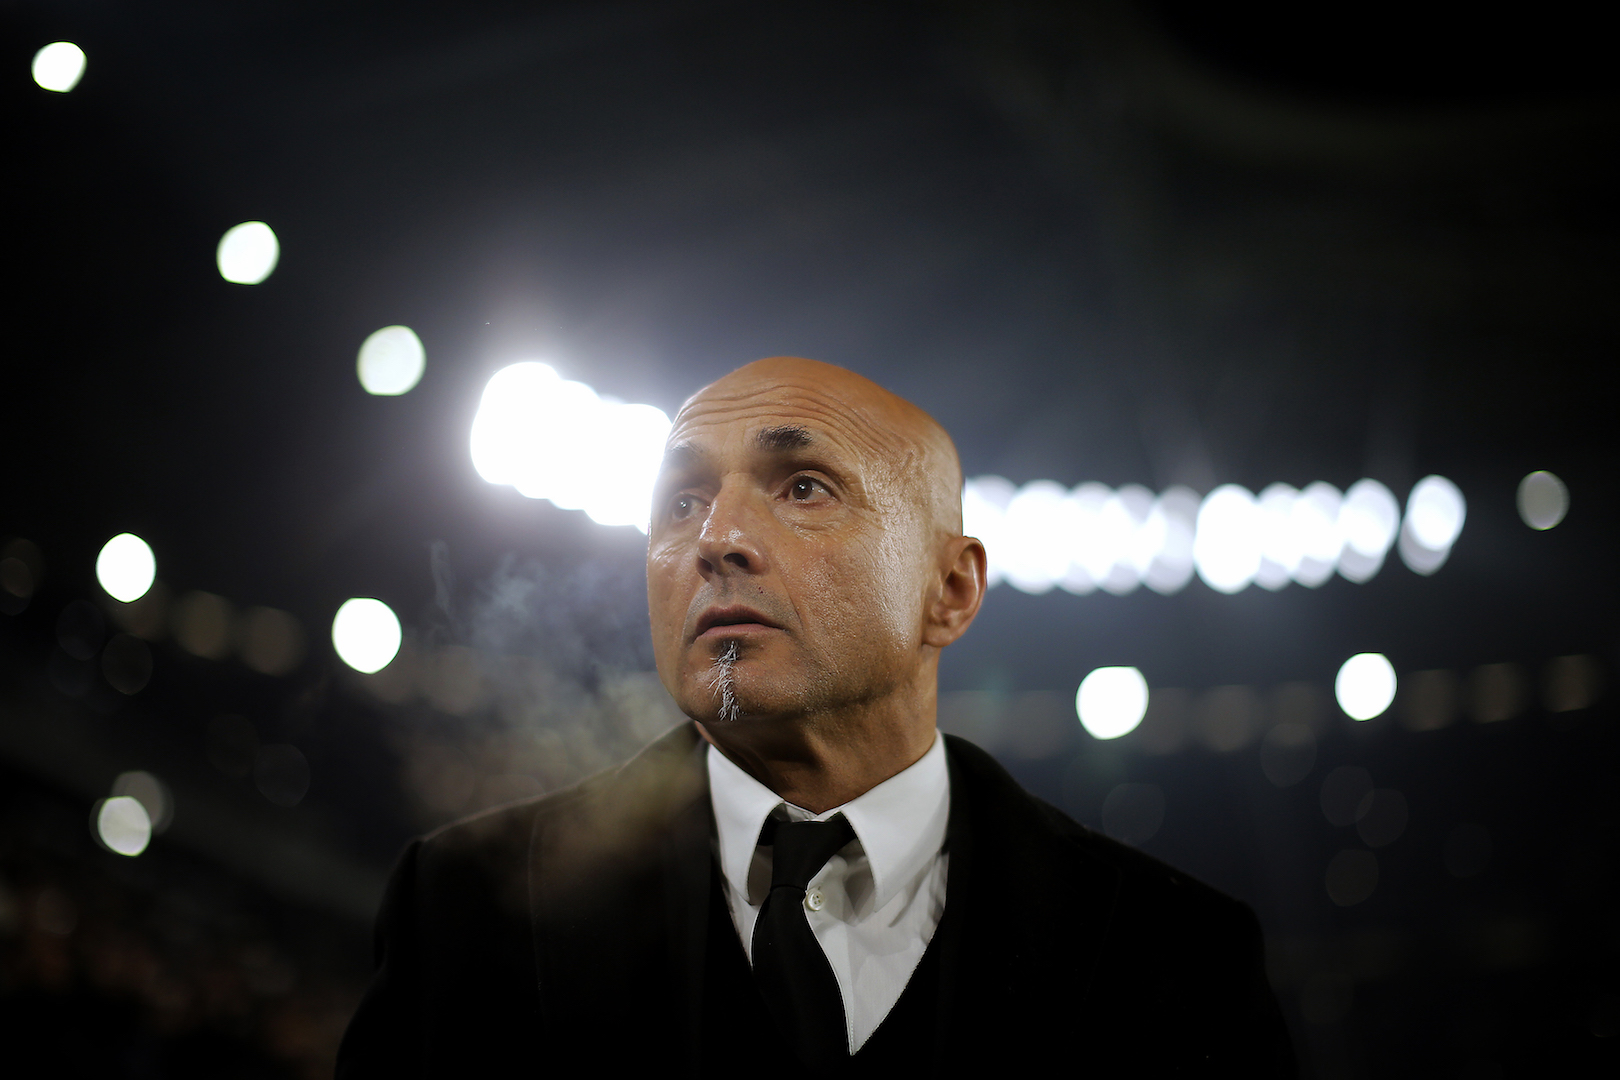 AS Roma's coach Luciano Spalletti looks on during the Italian Serie A football match between Juventus and As Roma on December 17, 2016 at the Juventus Stadium, in Turin. / AFP / MARCO BERTORELLO (Photo credit should read MARCO BERTORELLO/AFP/Getty Images)